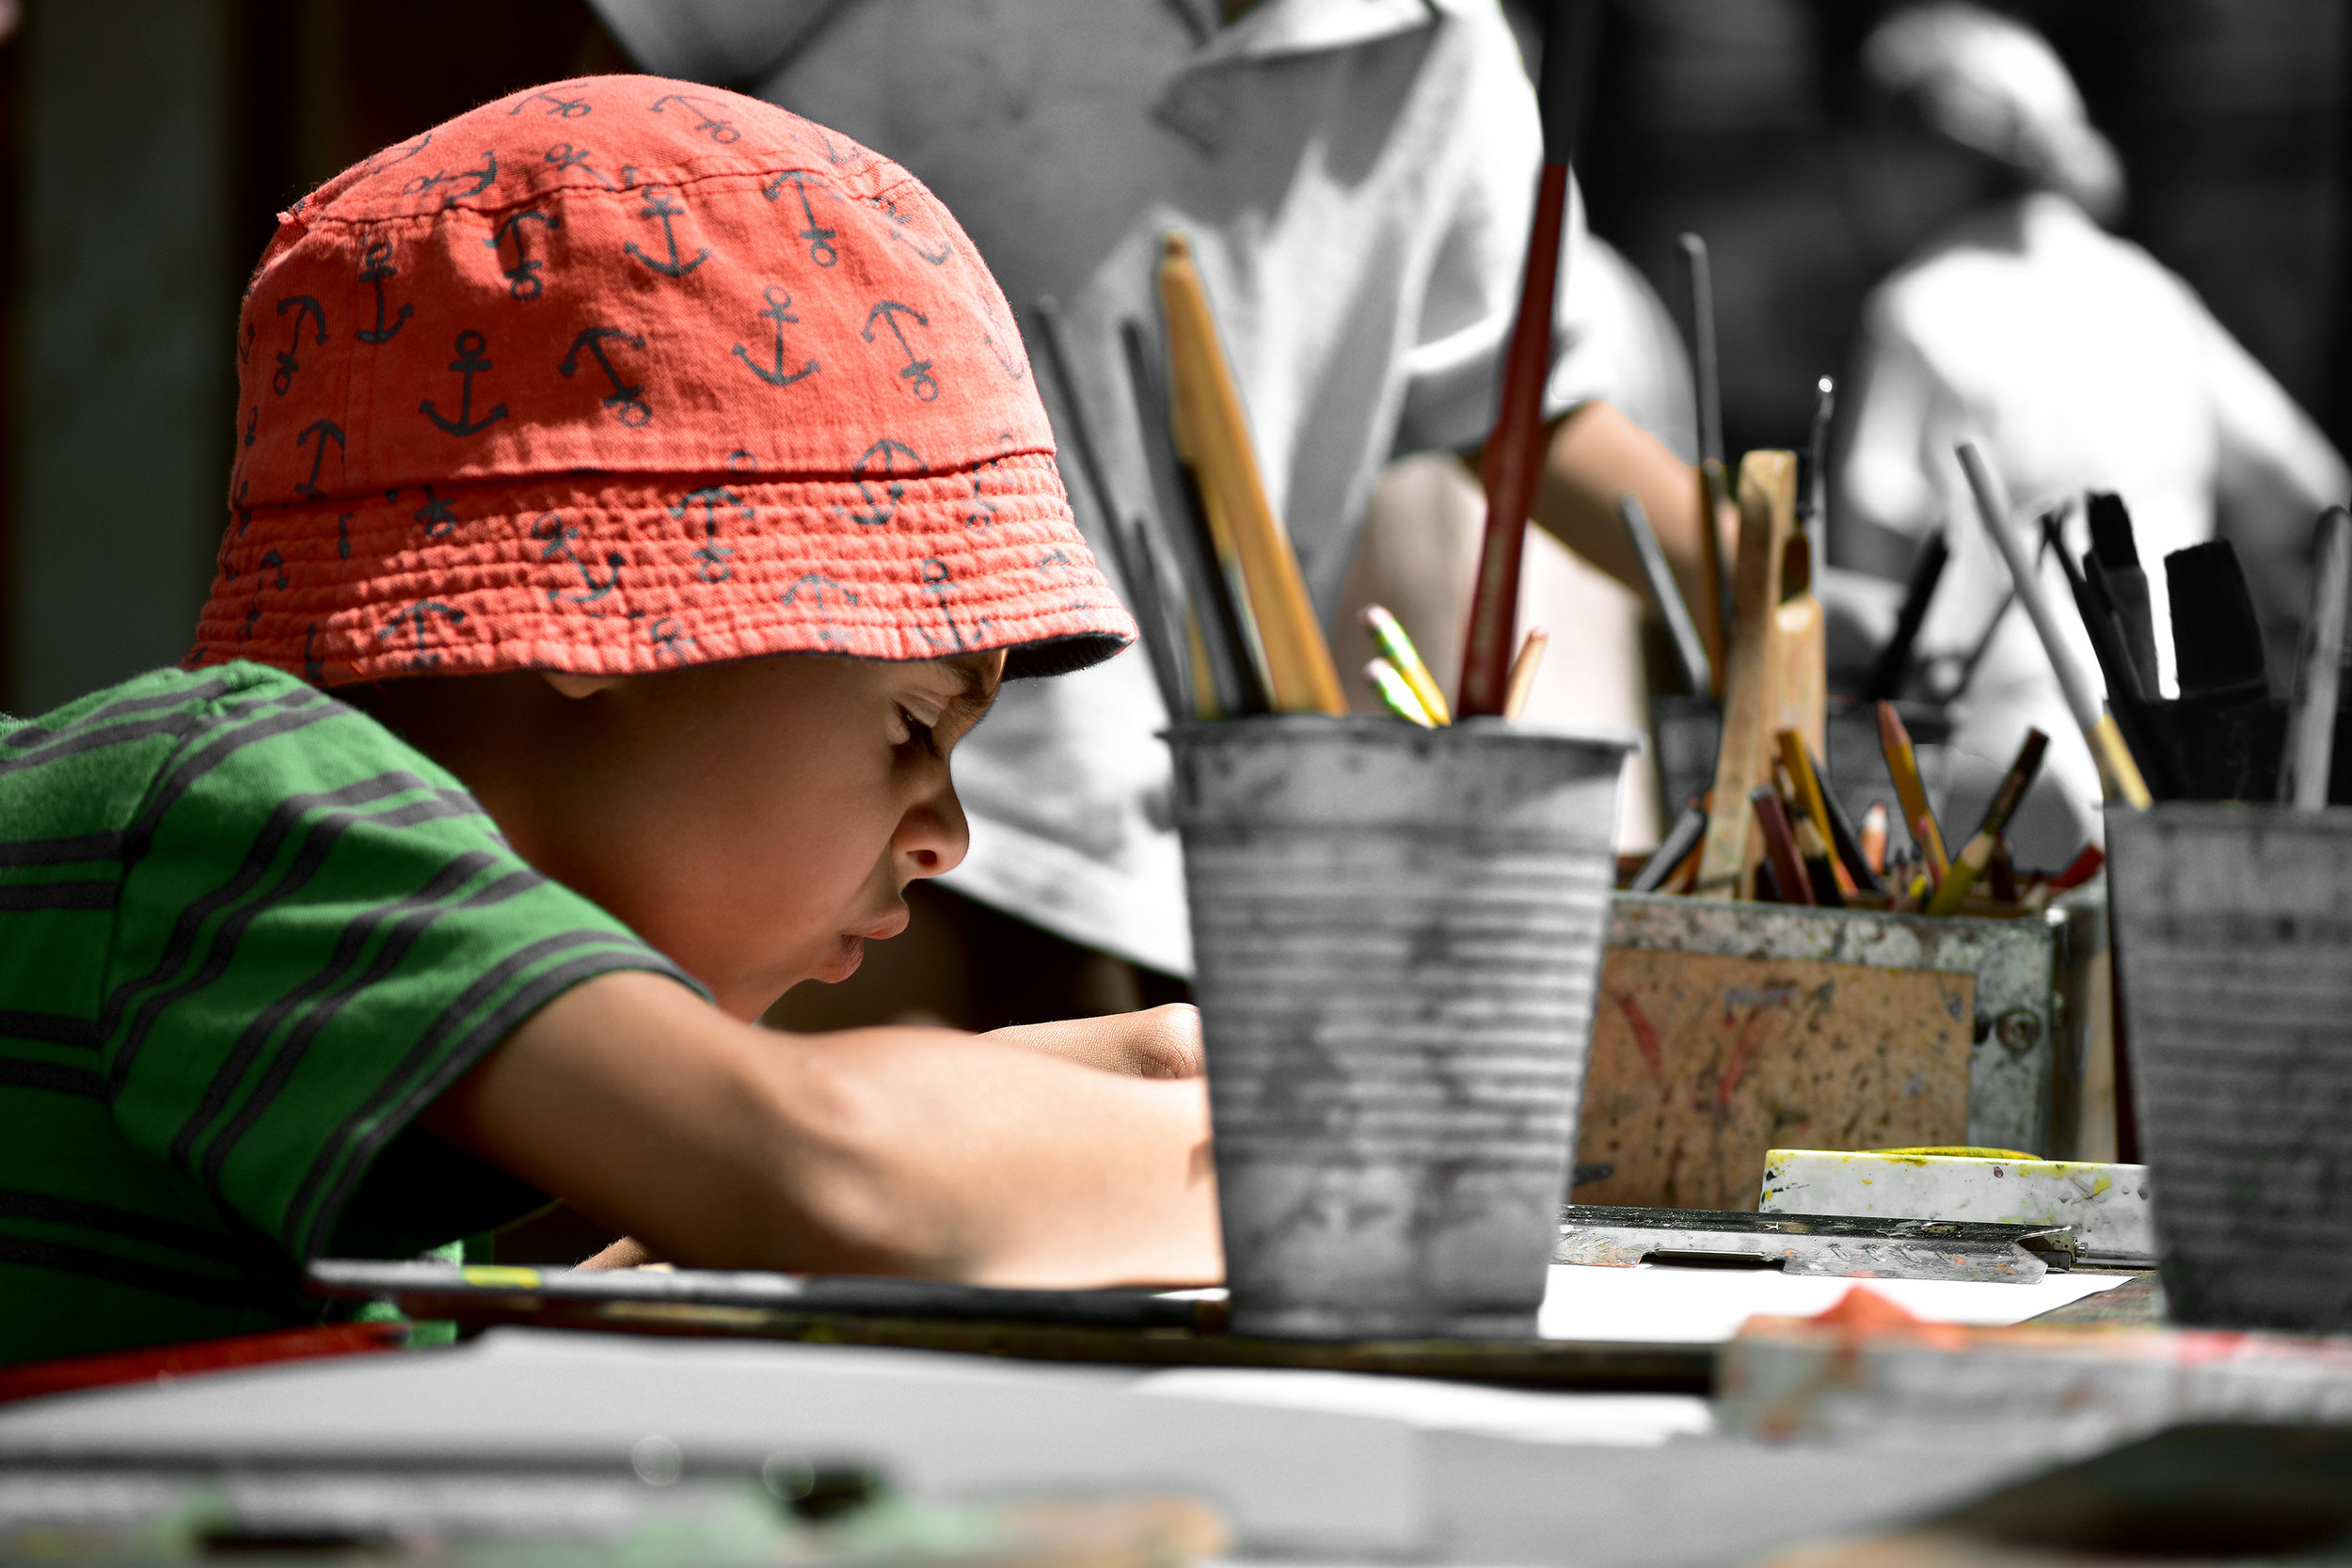 The process of childhood is one where our experience shades the colors of our perspective. It is a mix of coloring within the lines and having color imprinted upon us.